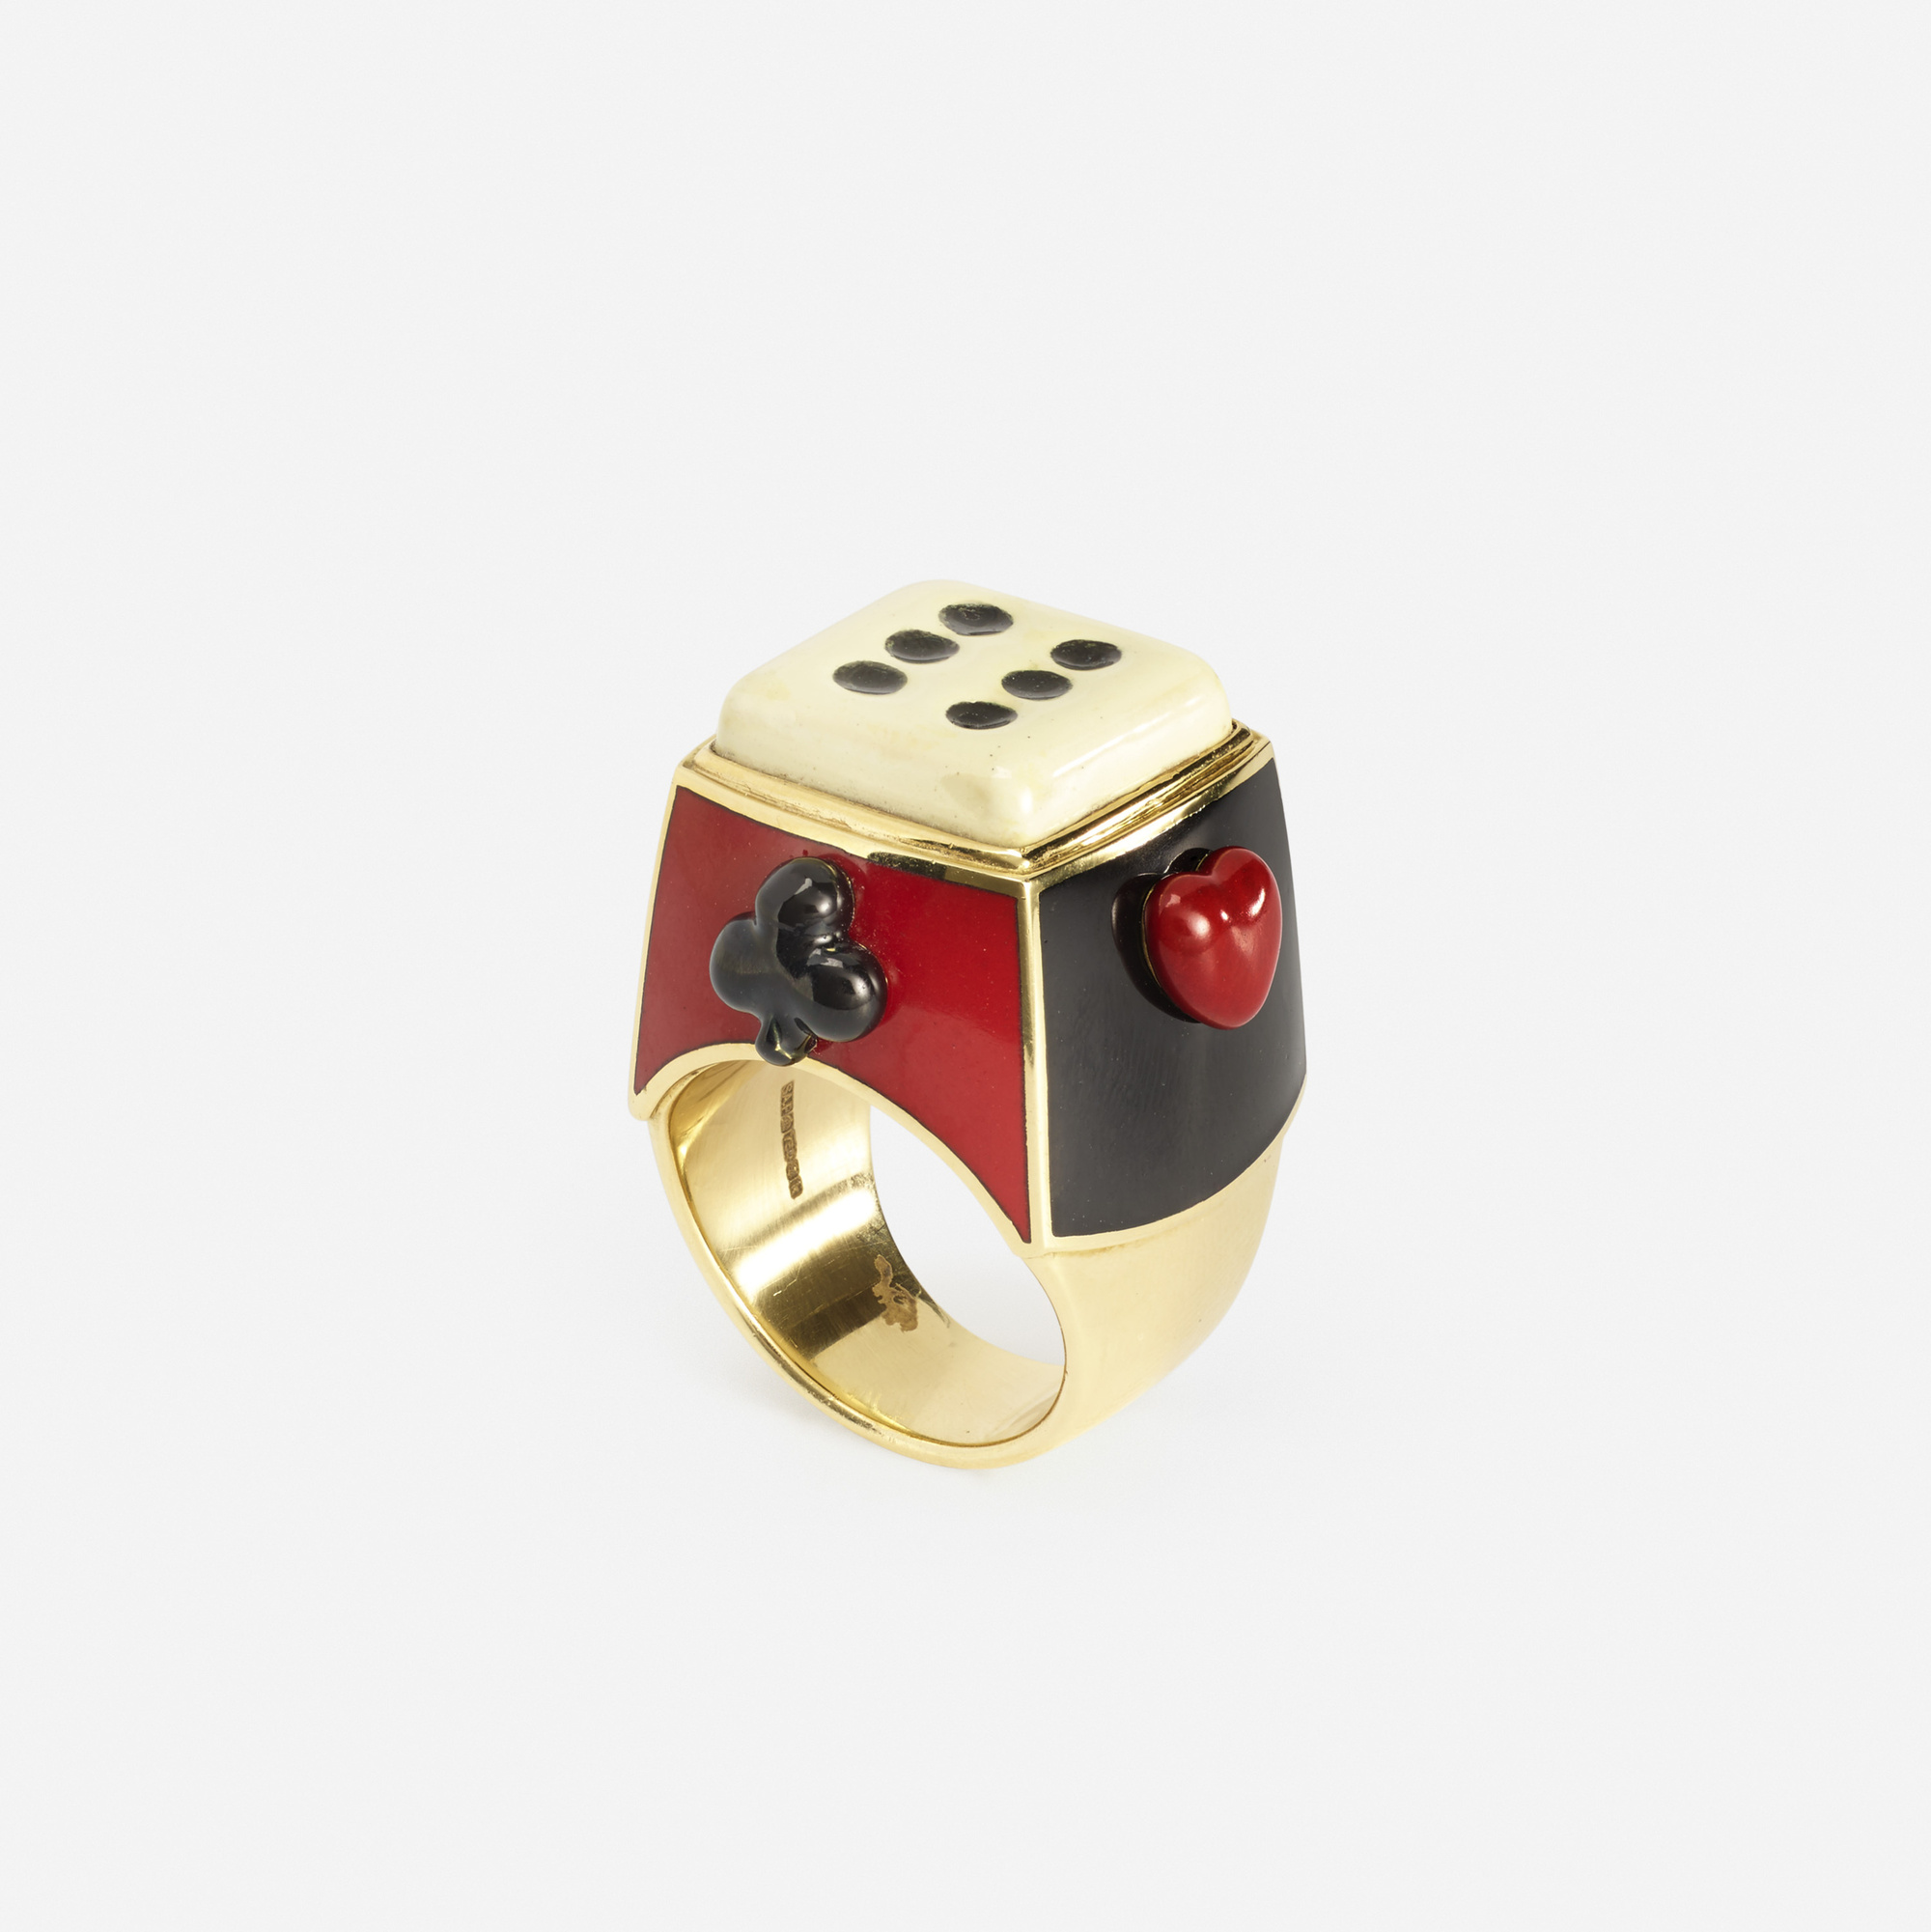 208: Solange Azagury-Partridge / A gold and enamel gaming ring (1 of 2)